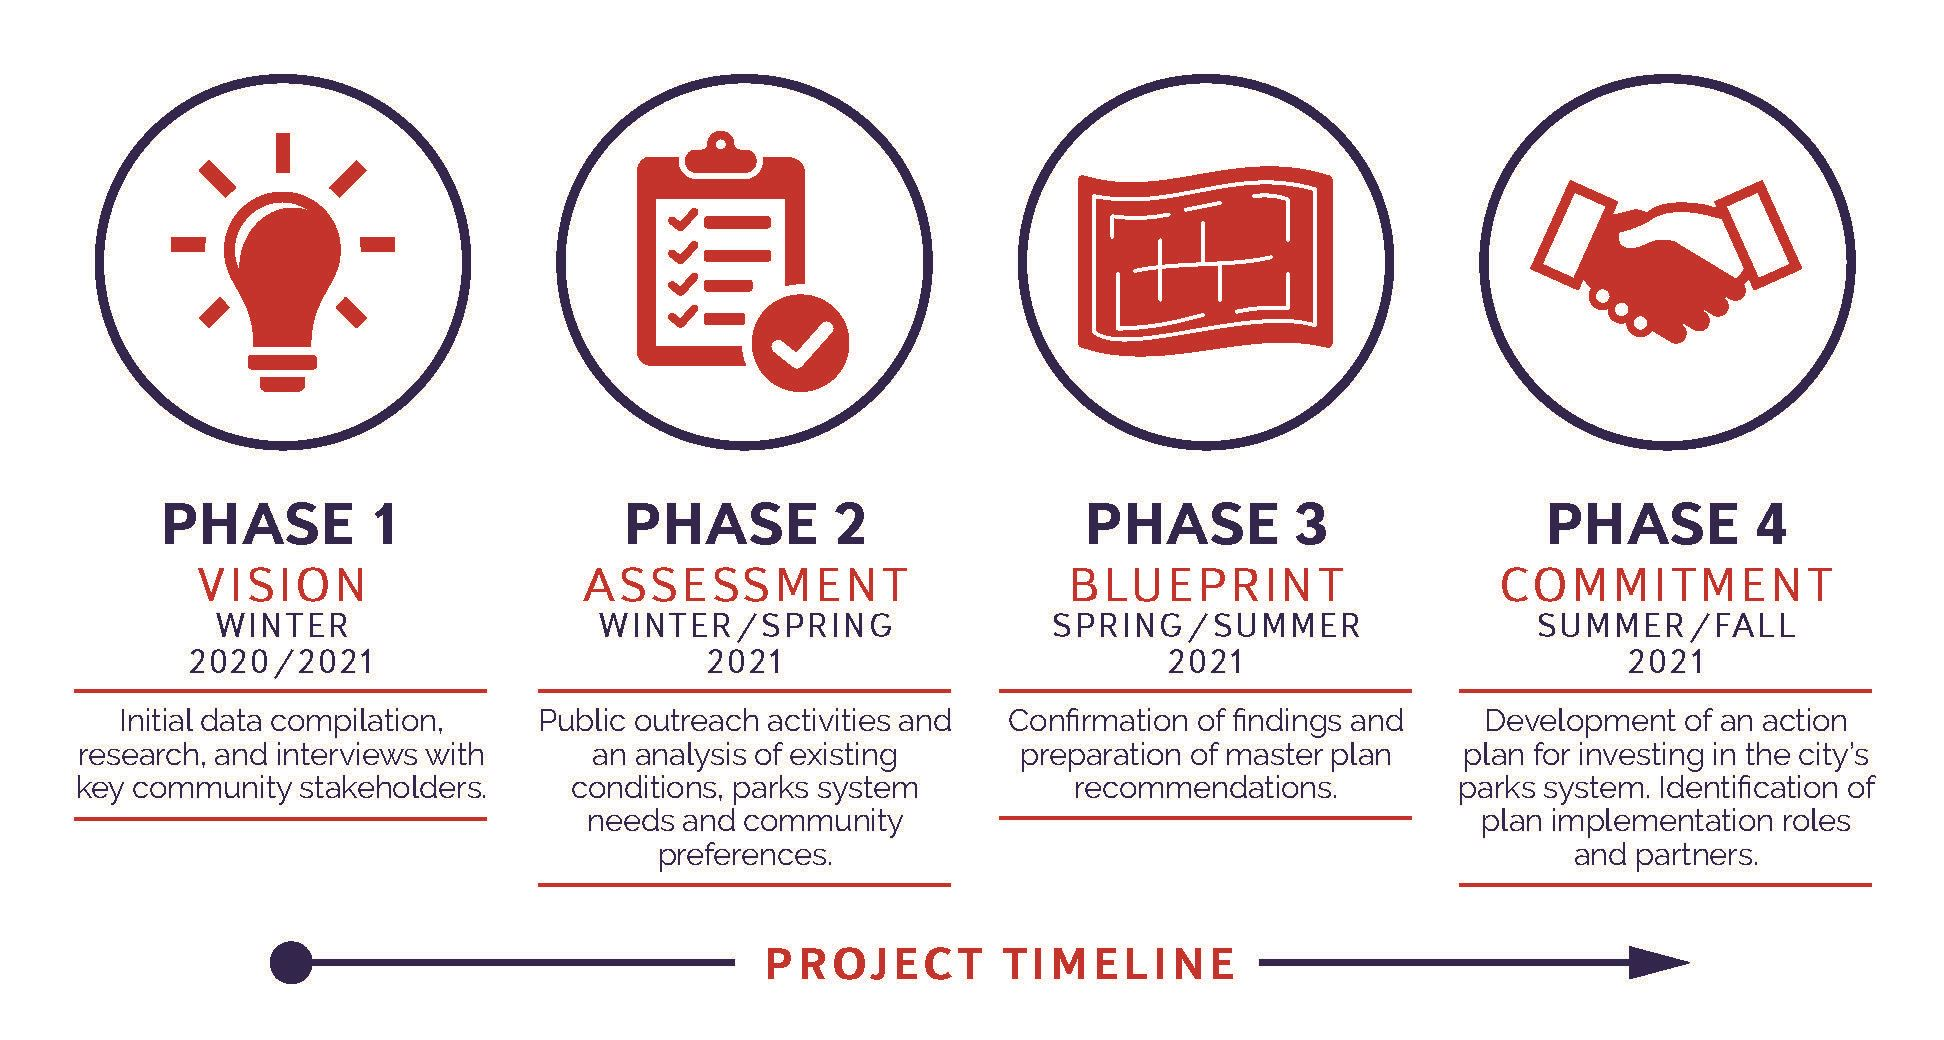 Link to Project Timeline for Phase 1, 2, 4, and 4 of the Parks Master Plan. Opens in new window